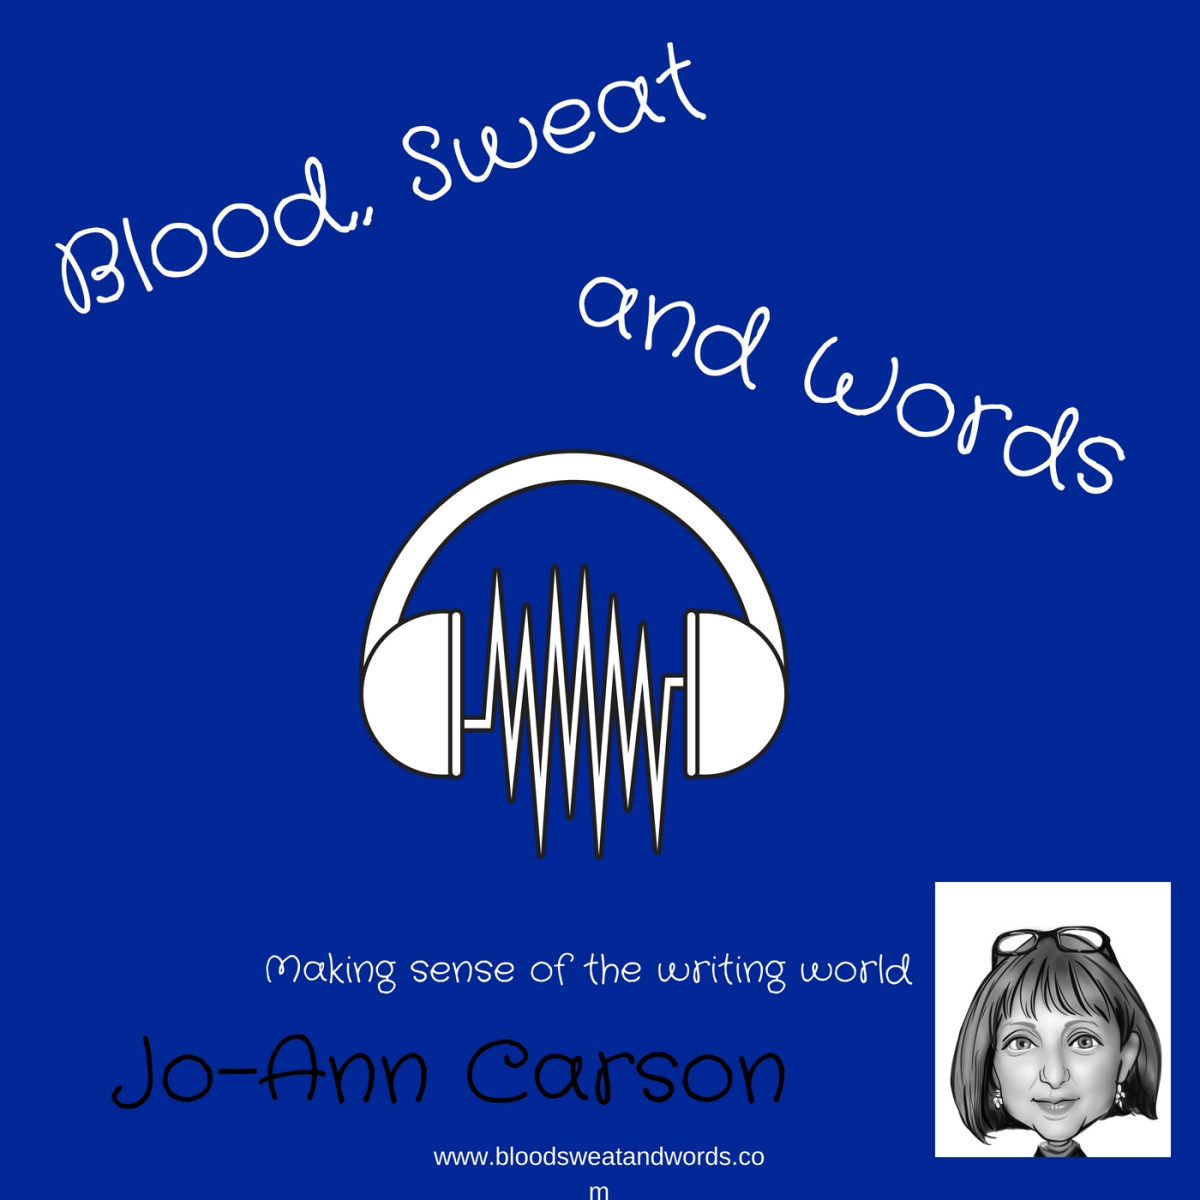 My BS and Words Podcast is Coming Together #Mondayblogs